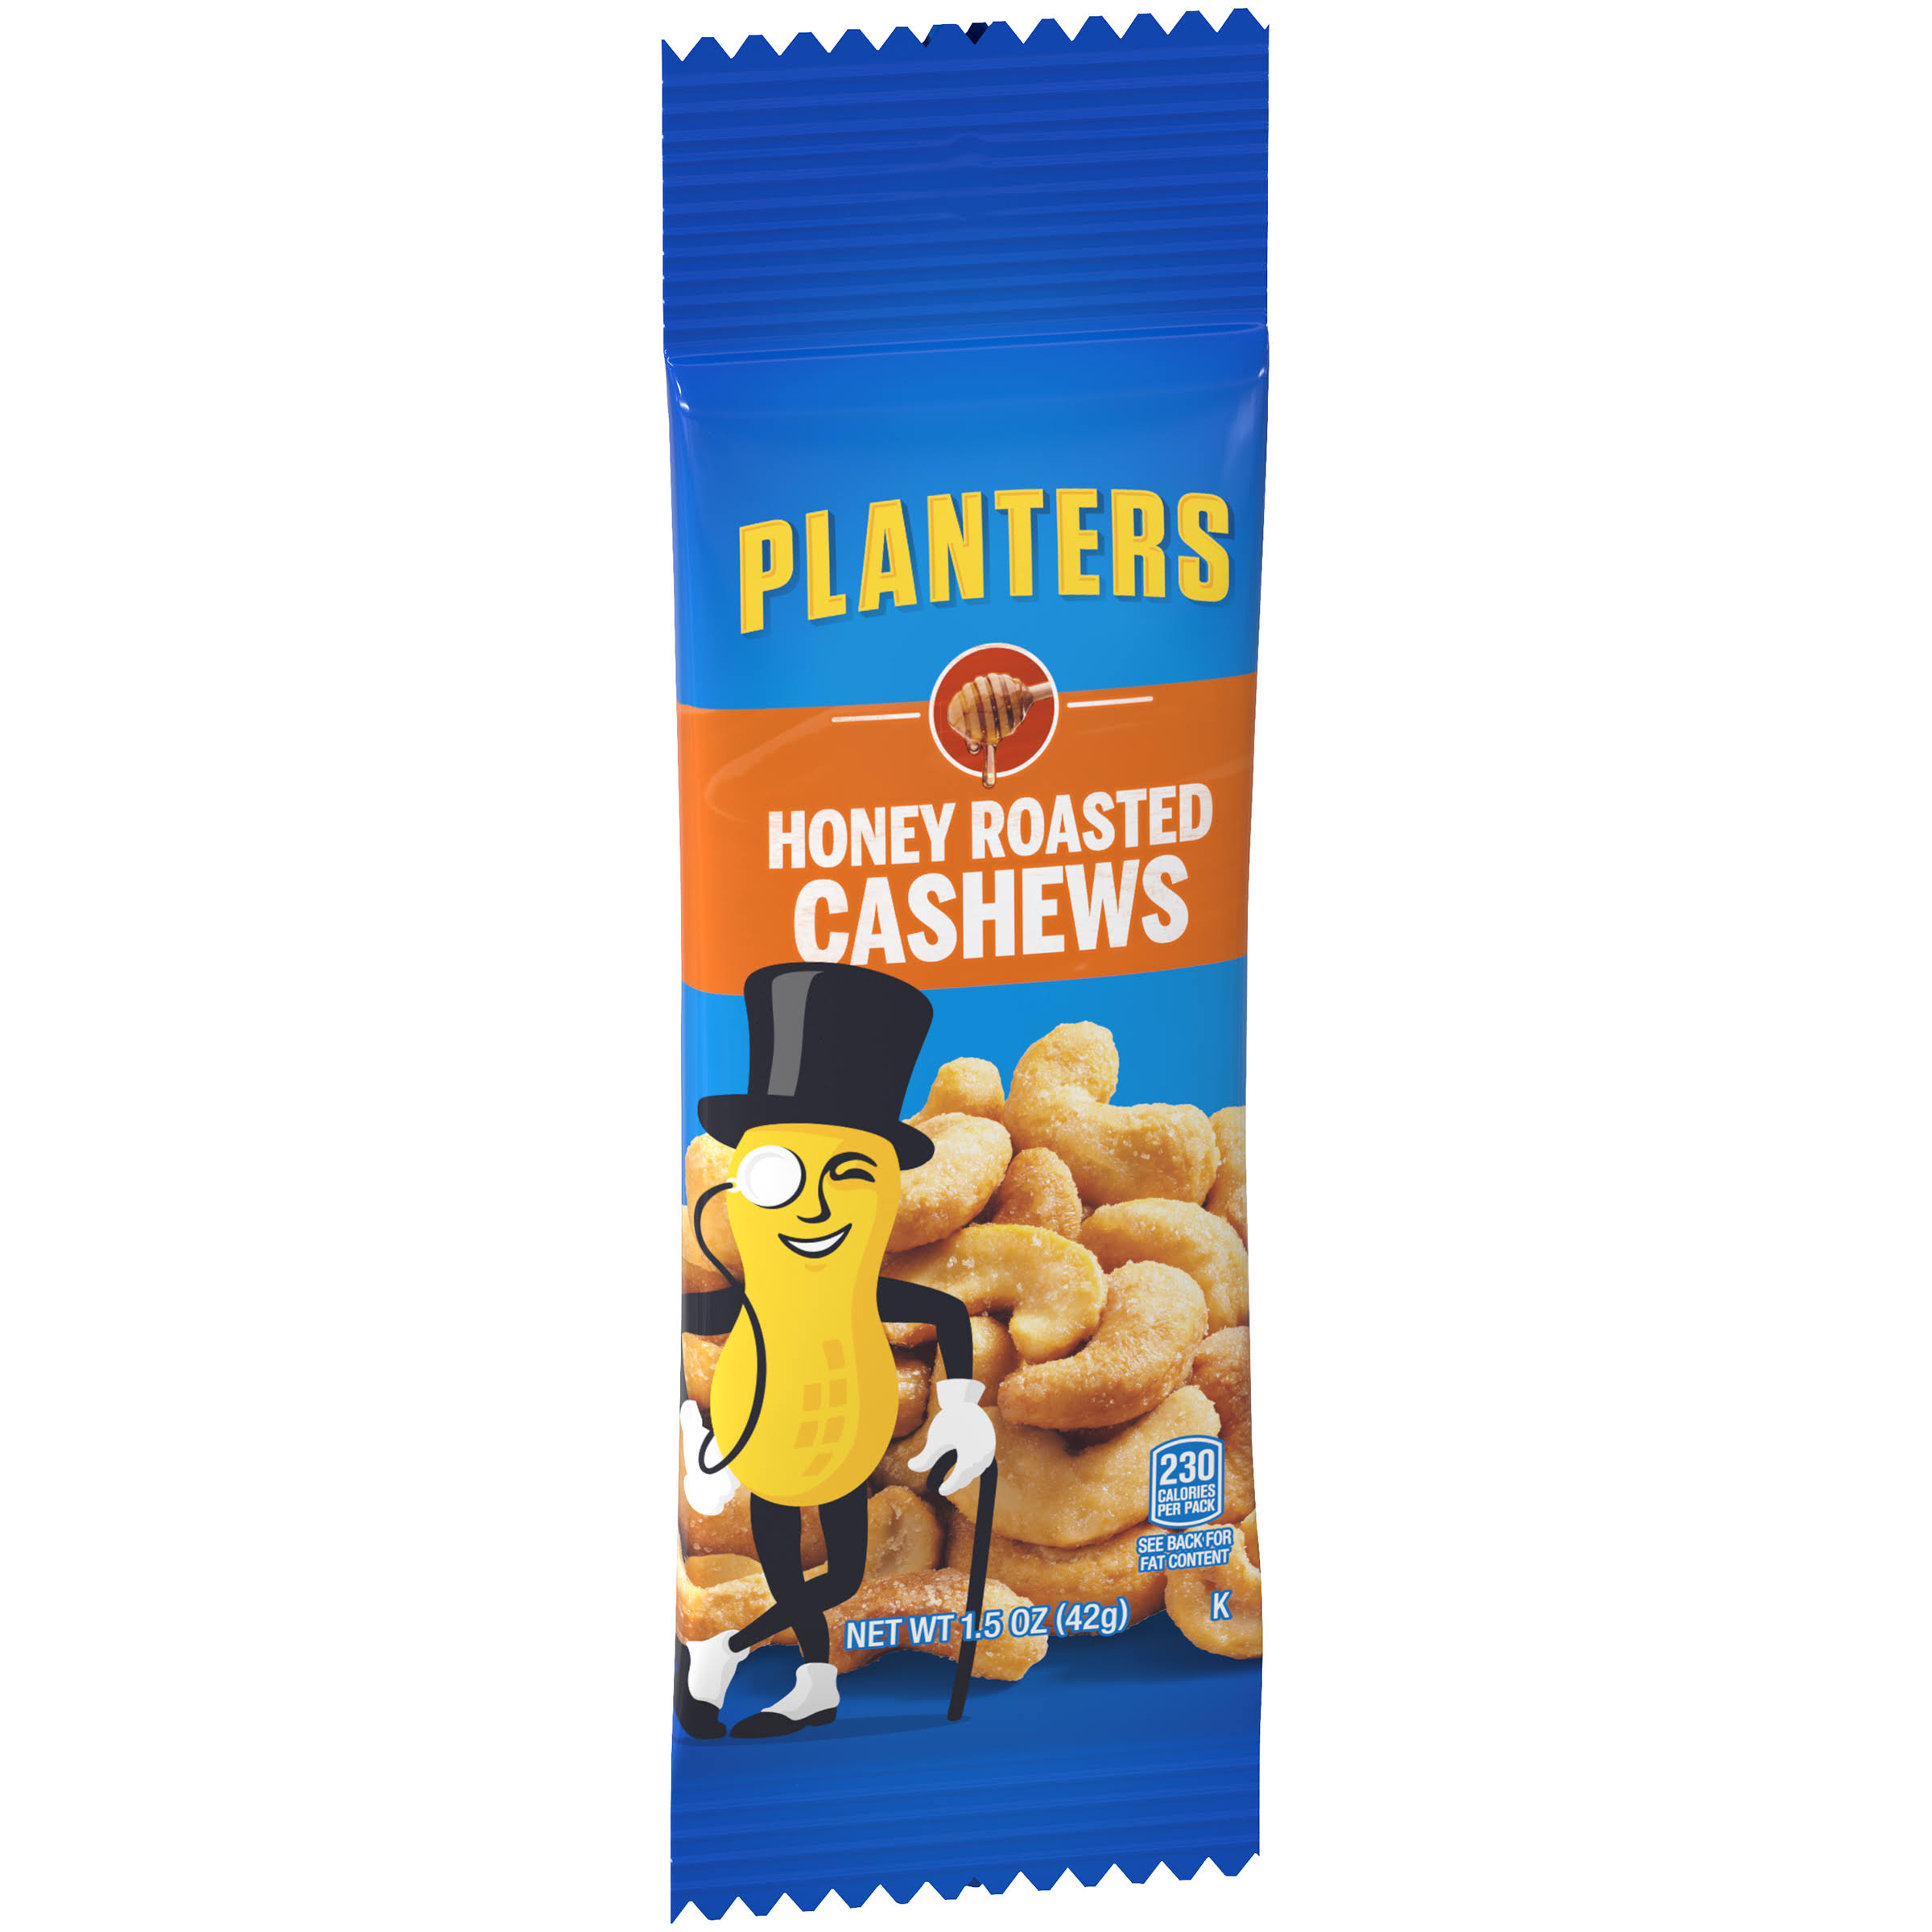 Planters Cashews, Honey Roasted - 1.5 oz